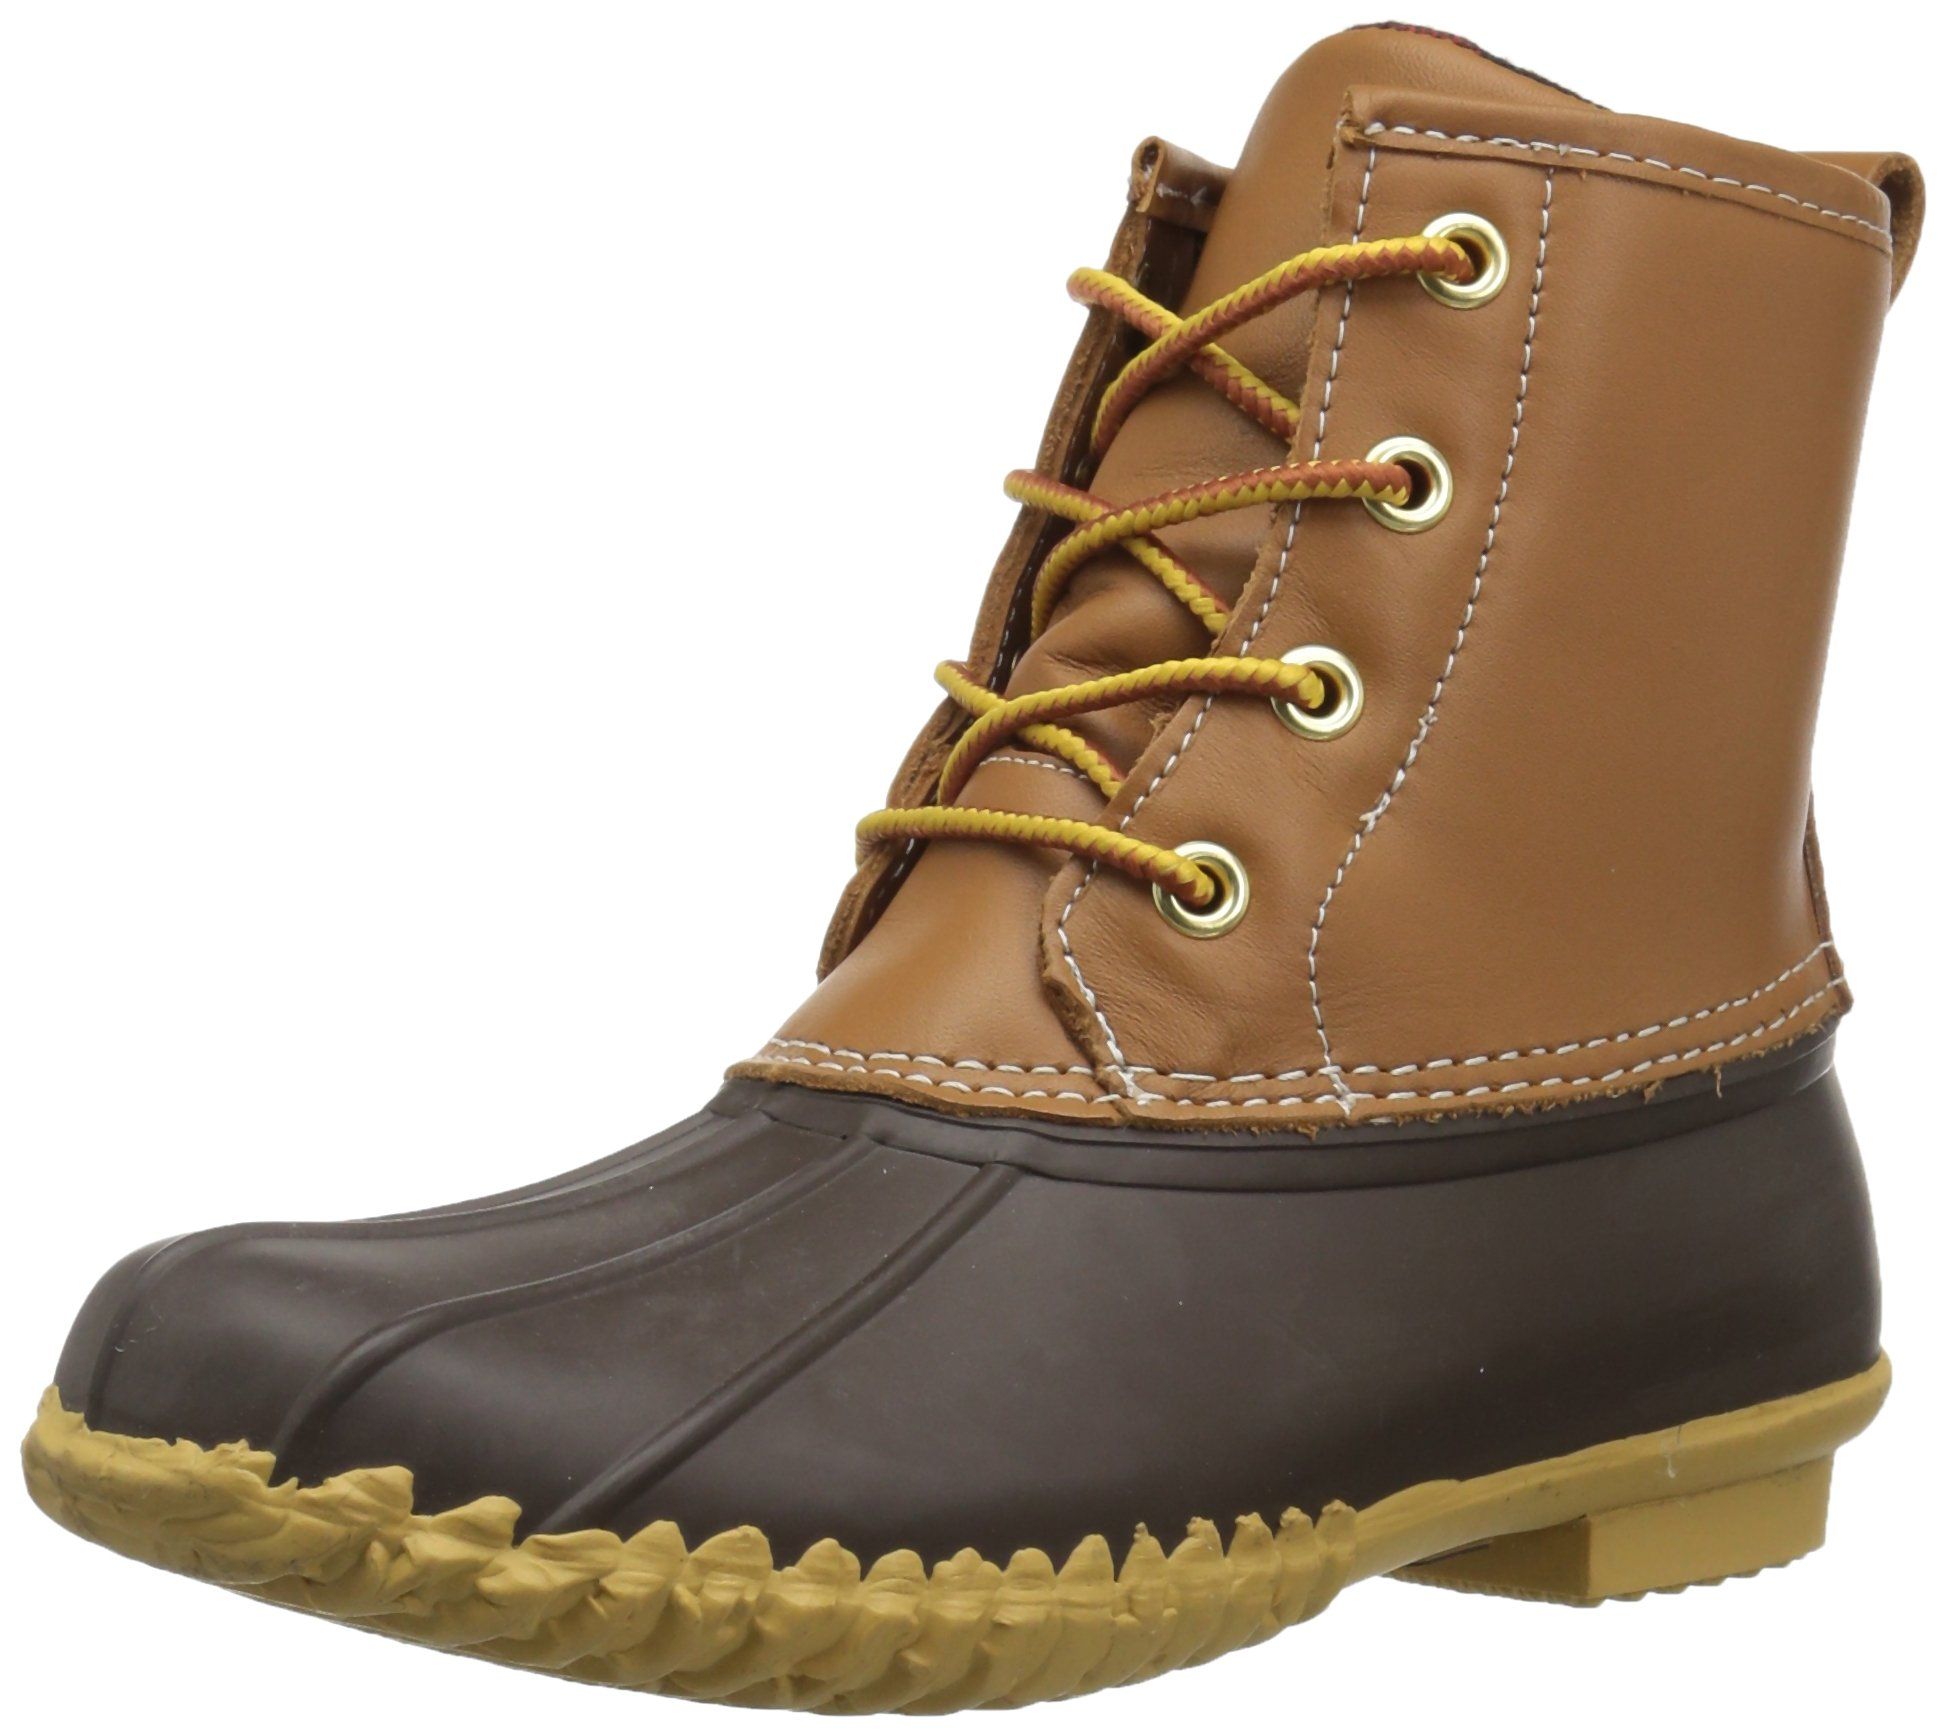 206 Collective Women's Rainier Duck Rain Boot, Tan/Navy, 8 B US